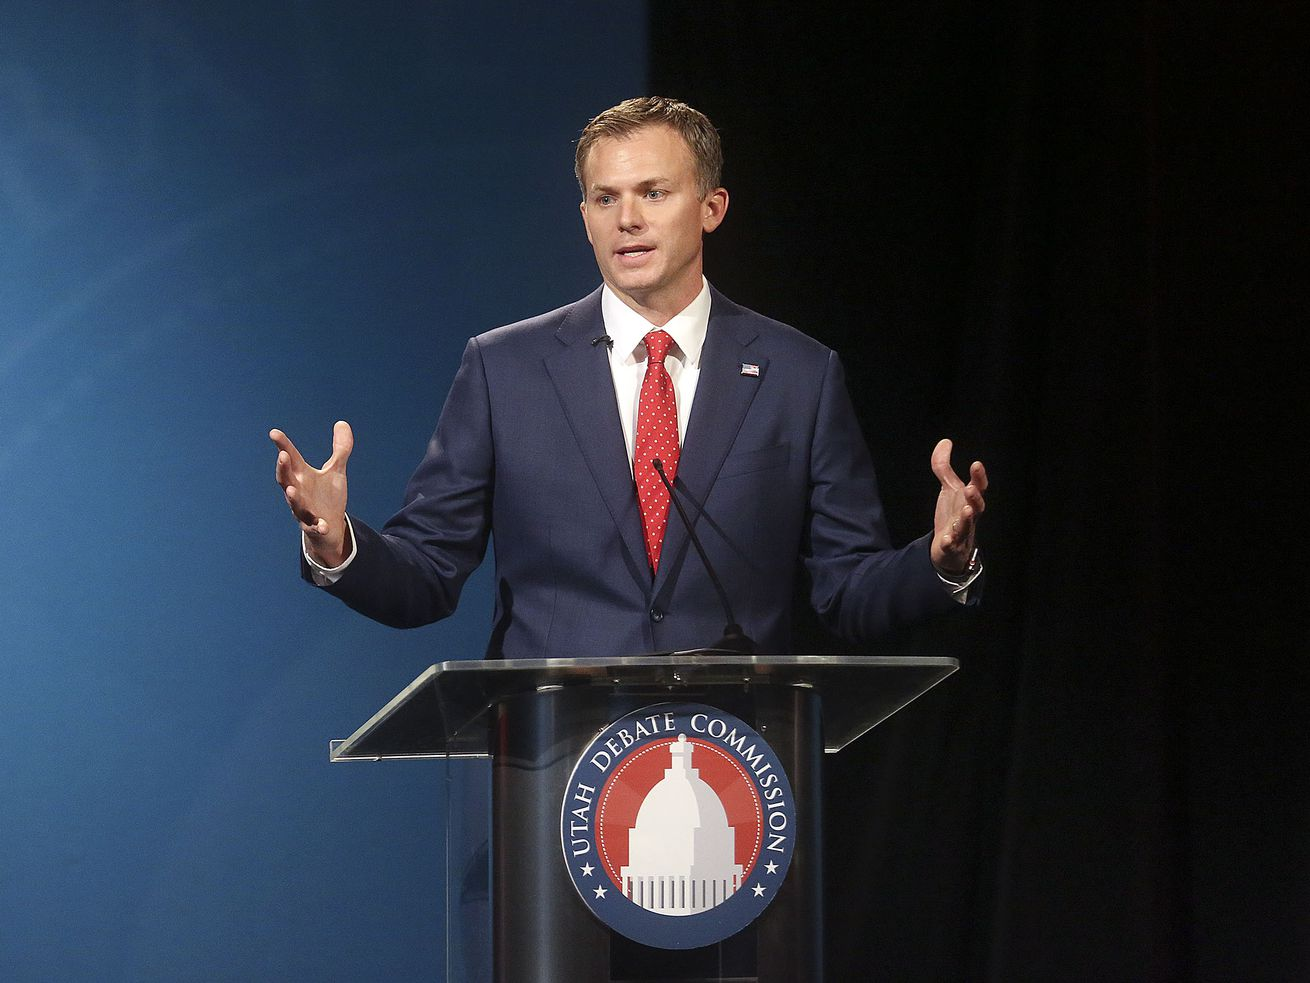 Republican candidate Blake Moore participates in the 1st Congressional District debate against Democrat Darren Perry, not pictured, at the Triad Center on Thursday, Sept. 24, 2020.